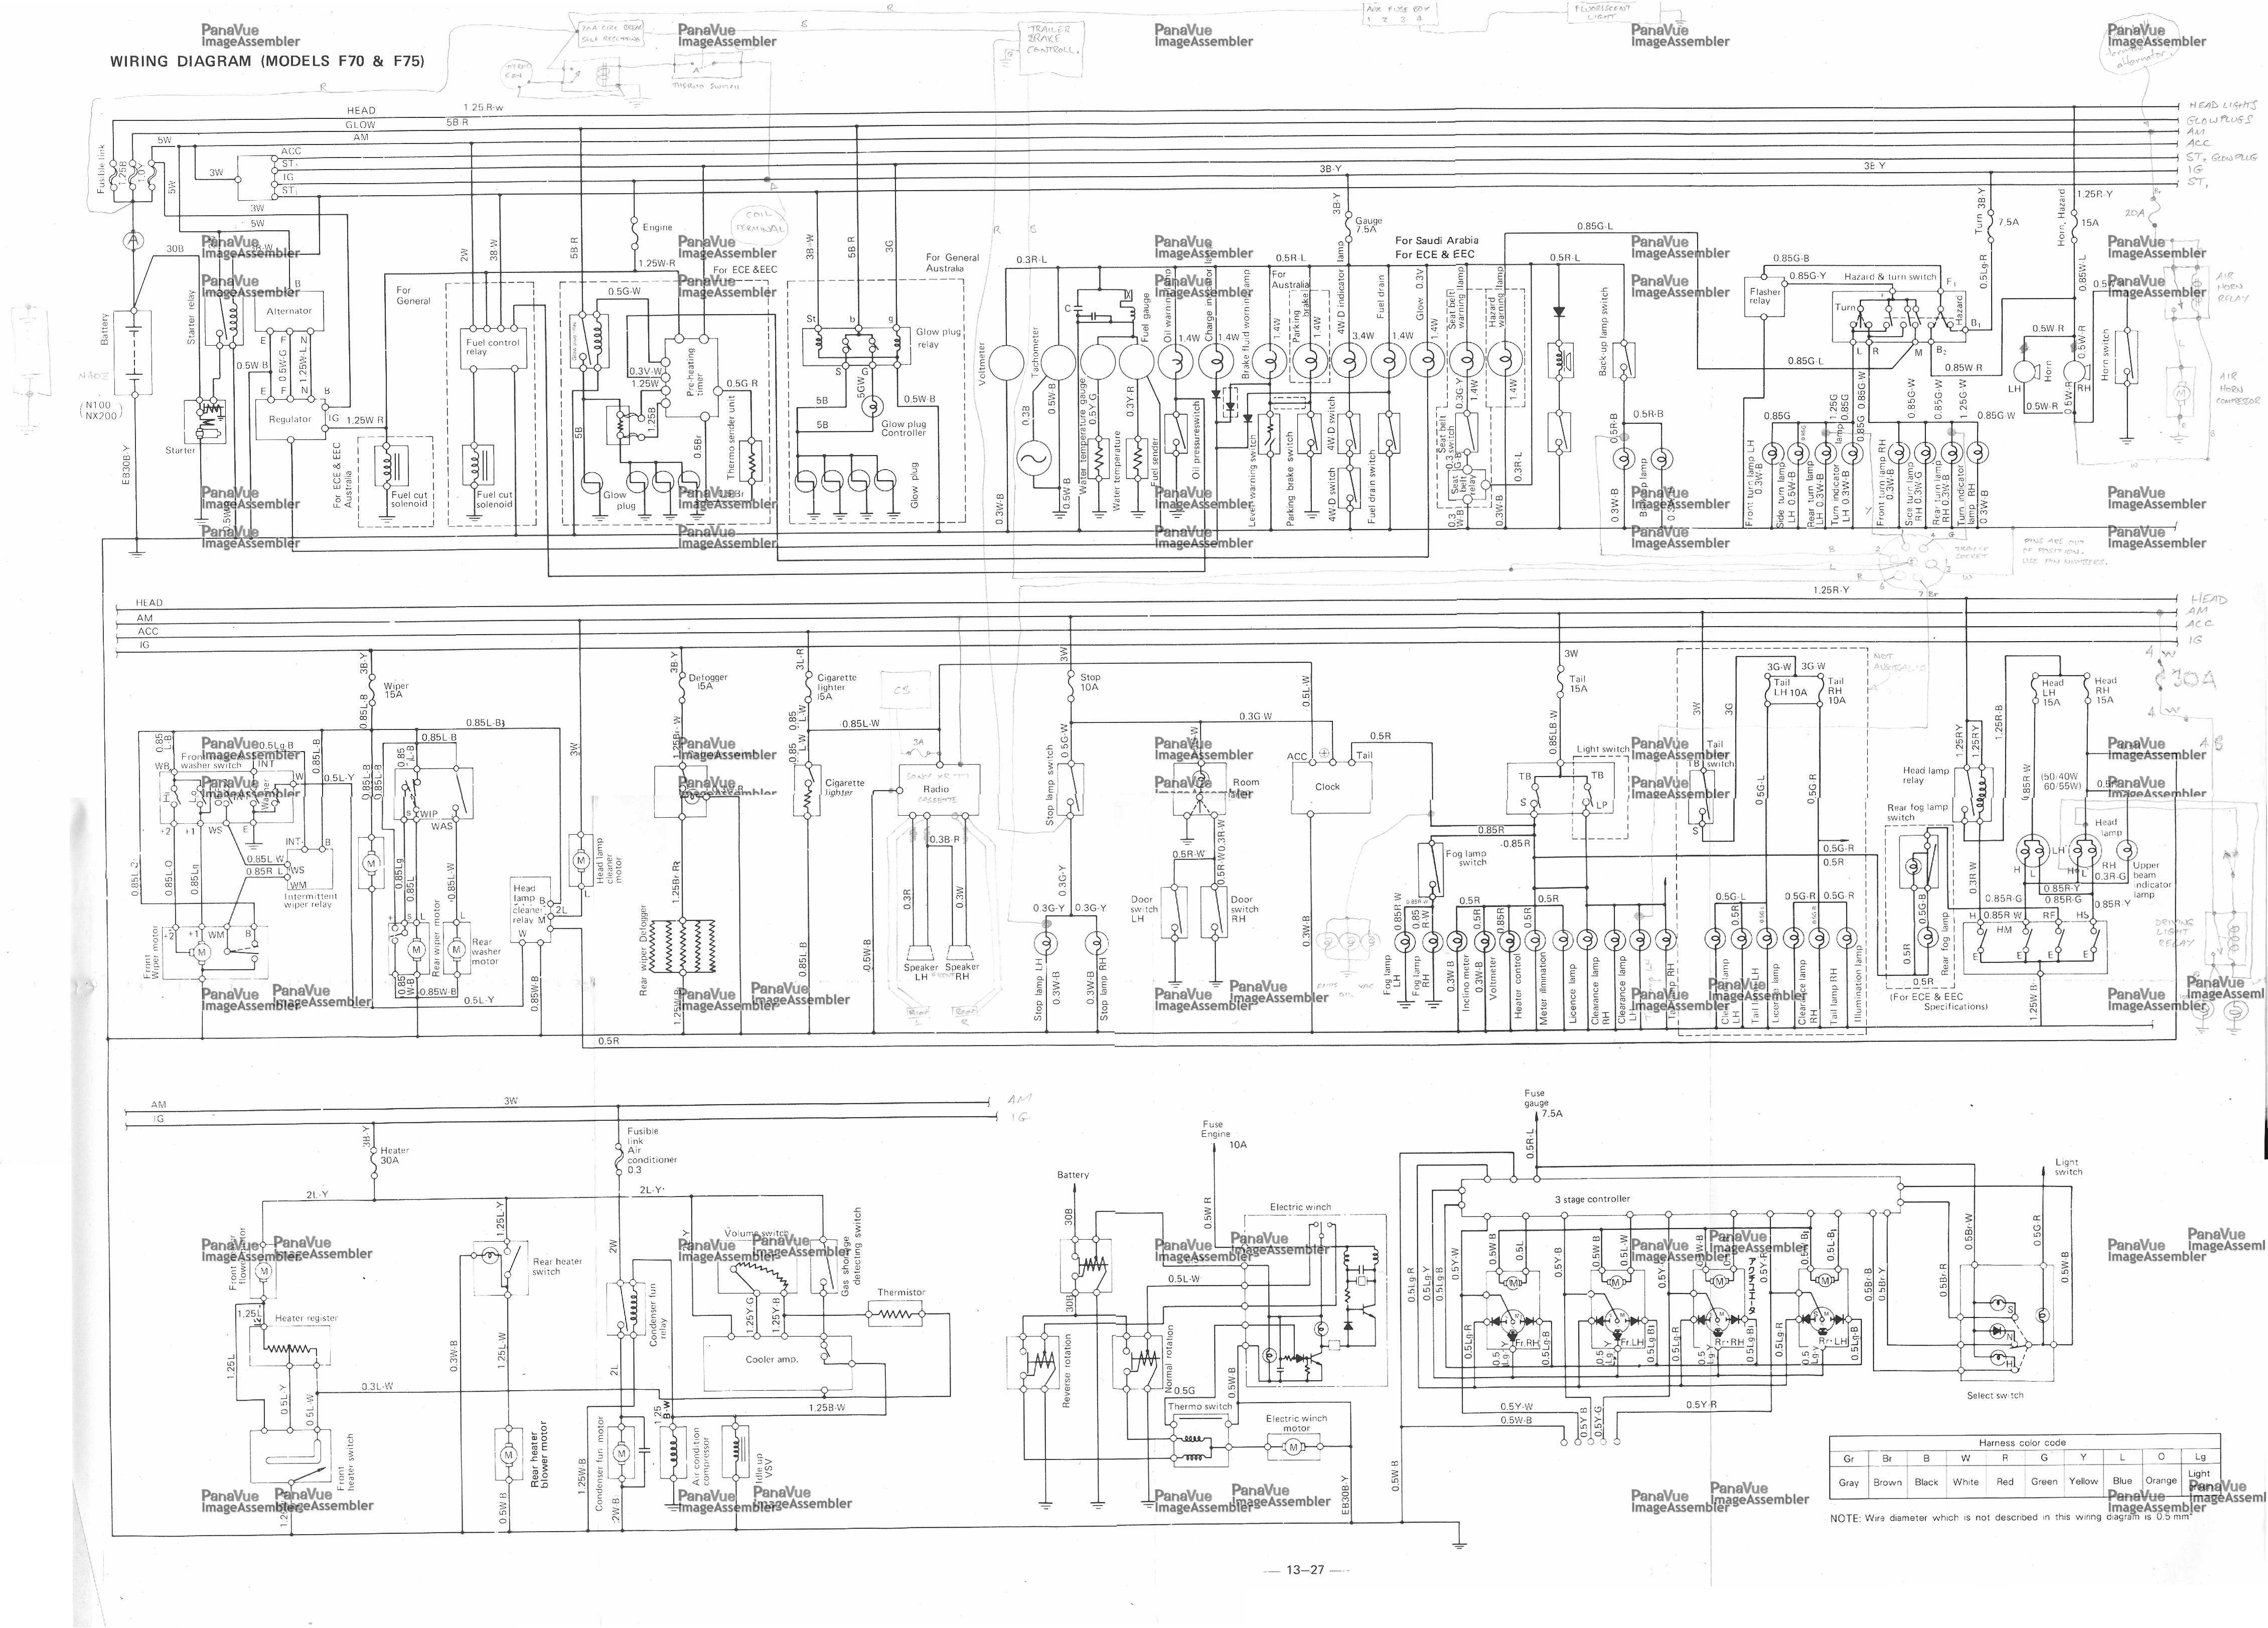 1979 Yamaha Wiring Diagram Electrical Schematics 1978 Xs650 Motorcycle Diagrams 1973 Rt3 Residential